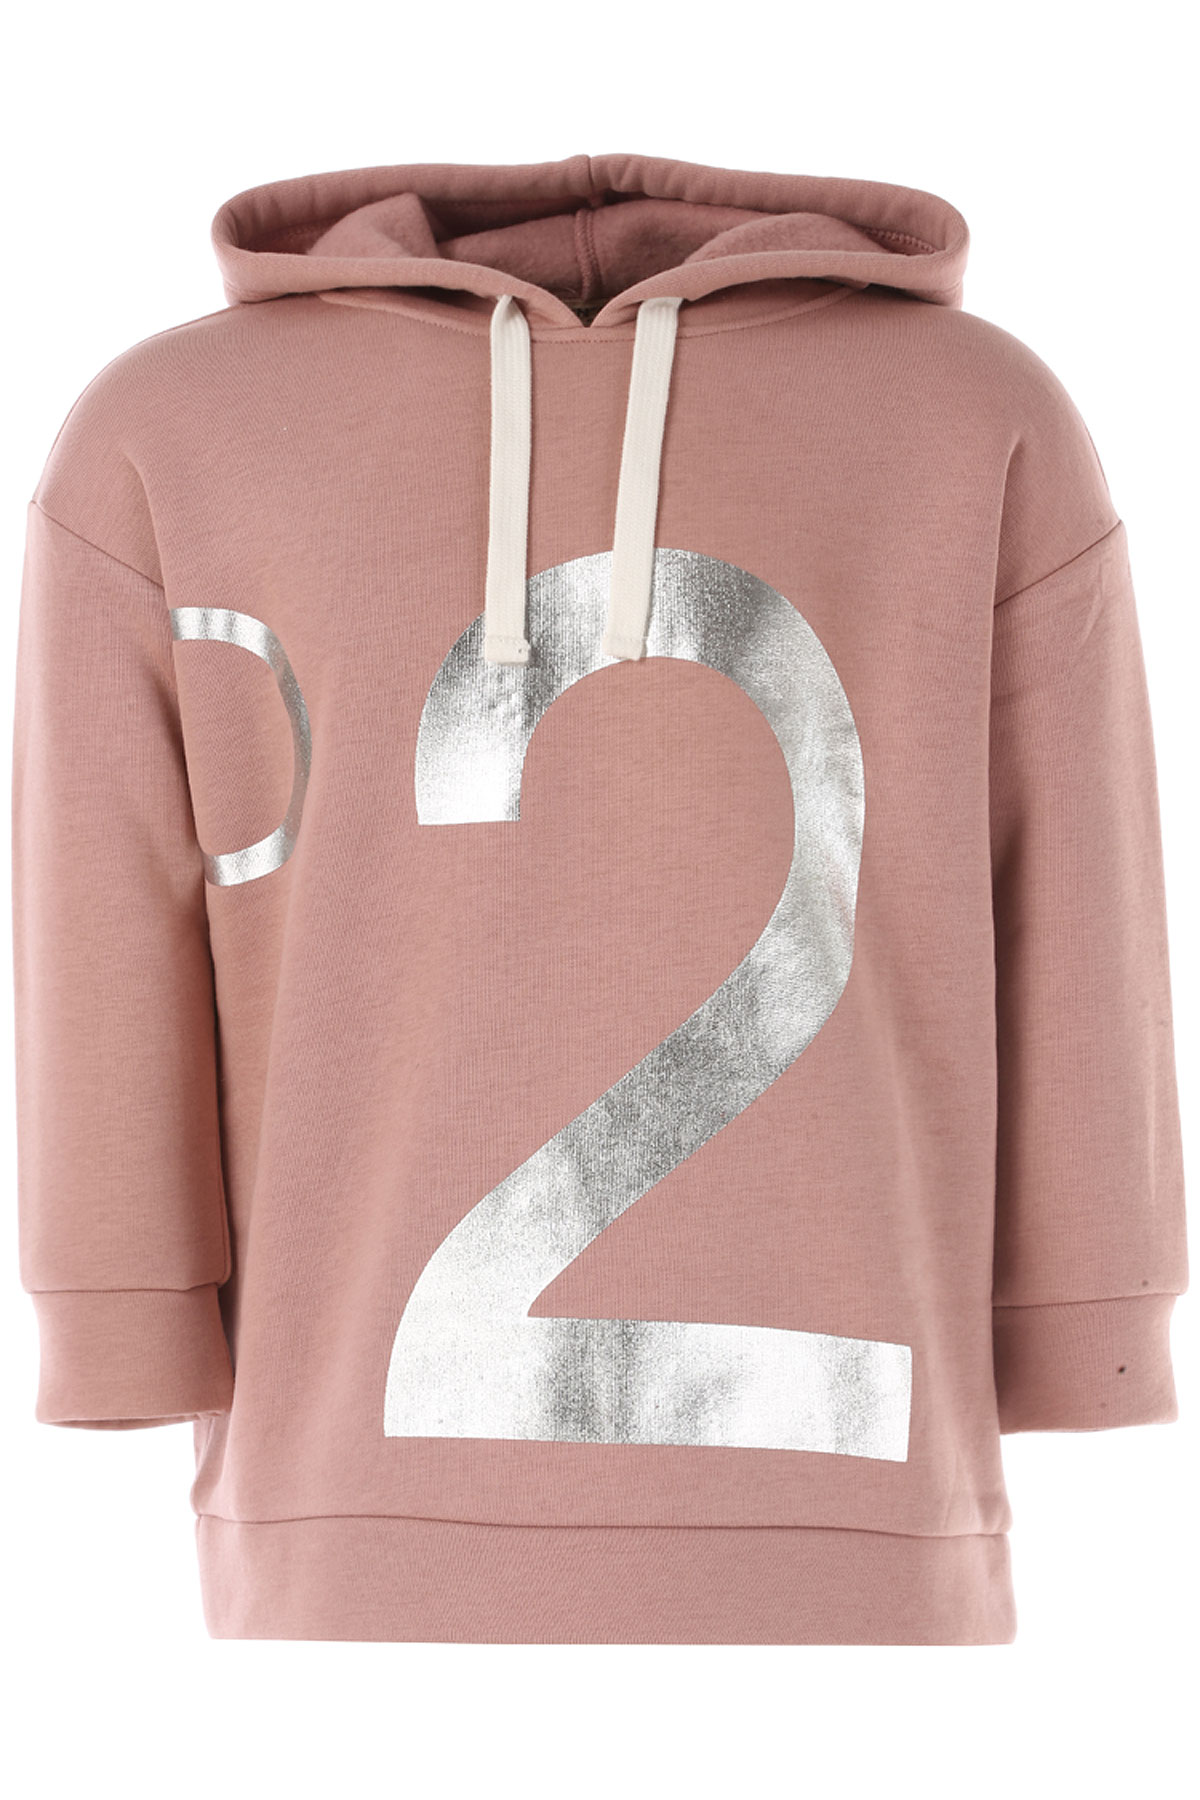 NO 21 Kids Sweatshirts & Hoodies for Girls On Sale in Outlet, Pink, Cotton, 2019, 26 (4 Years) 30 (6 Years)